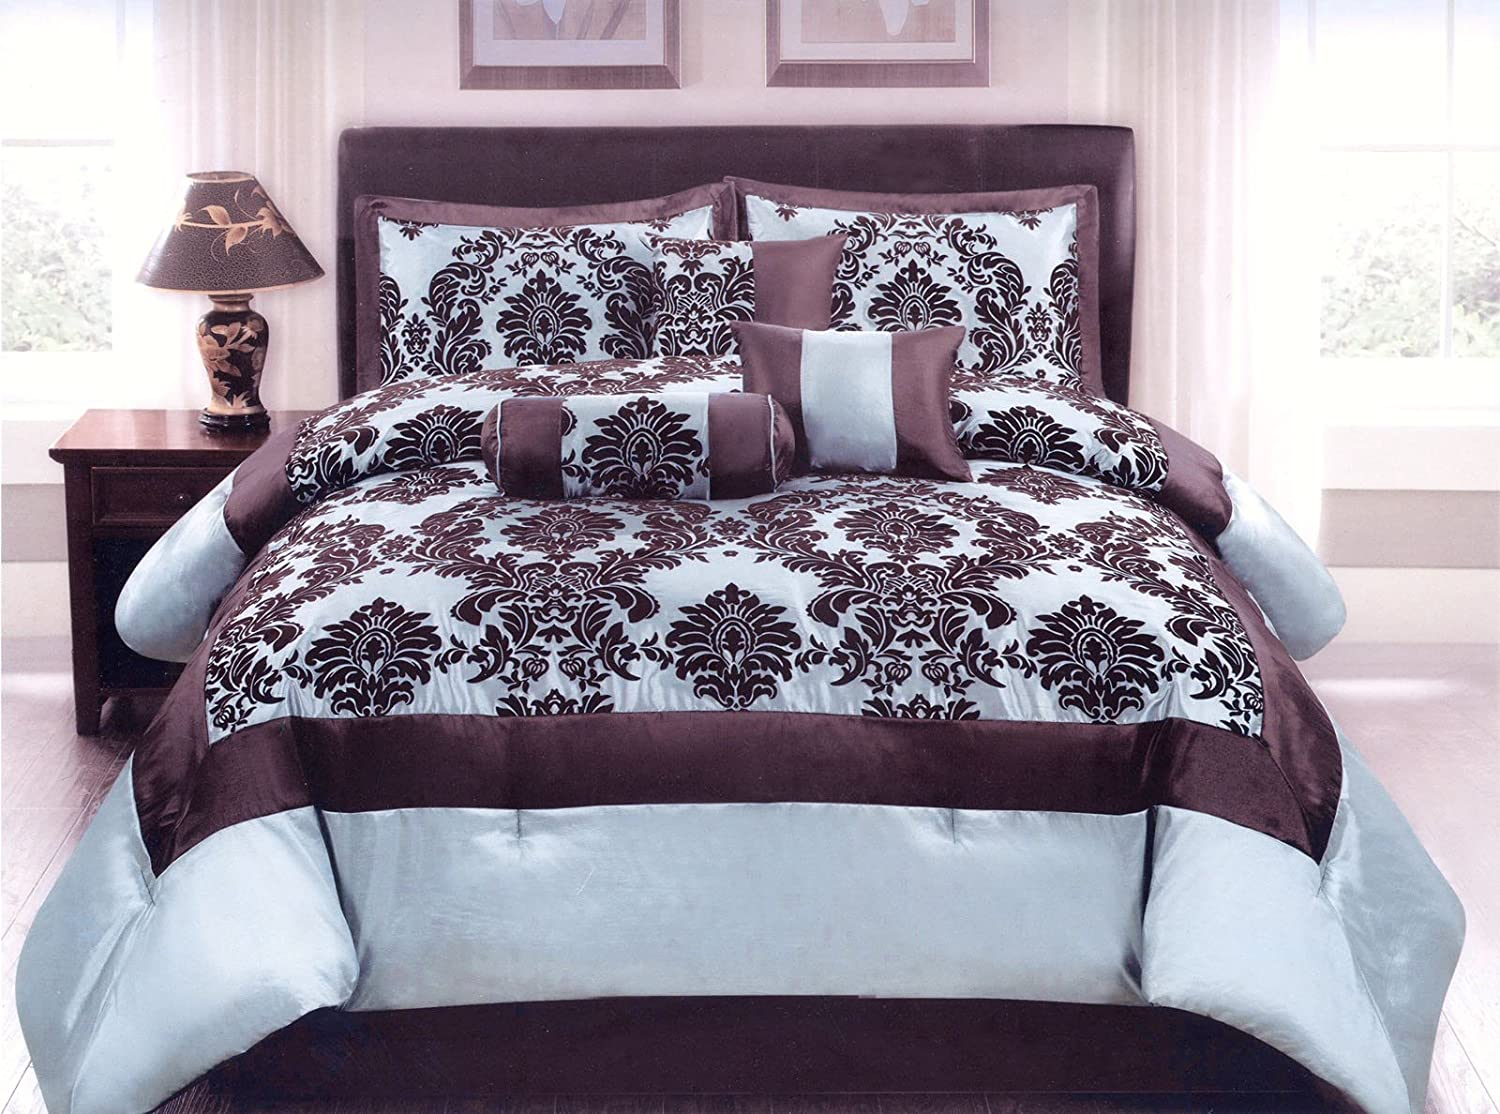 Jaba USA 7-Piece Queen Size Flocking Floral Comforter Set Bed-In-A-Bag Light Blue, Brown at Sears.com